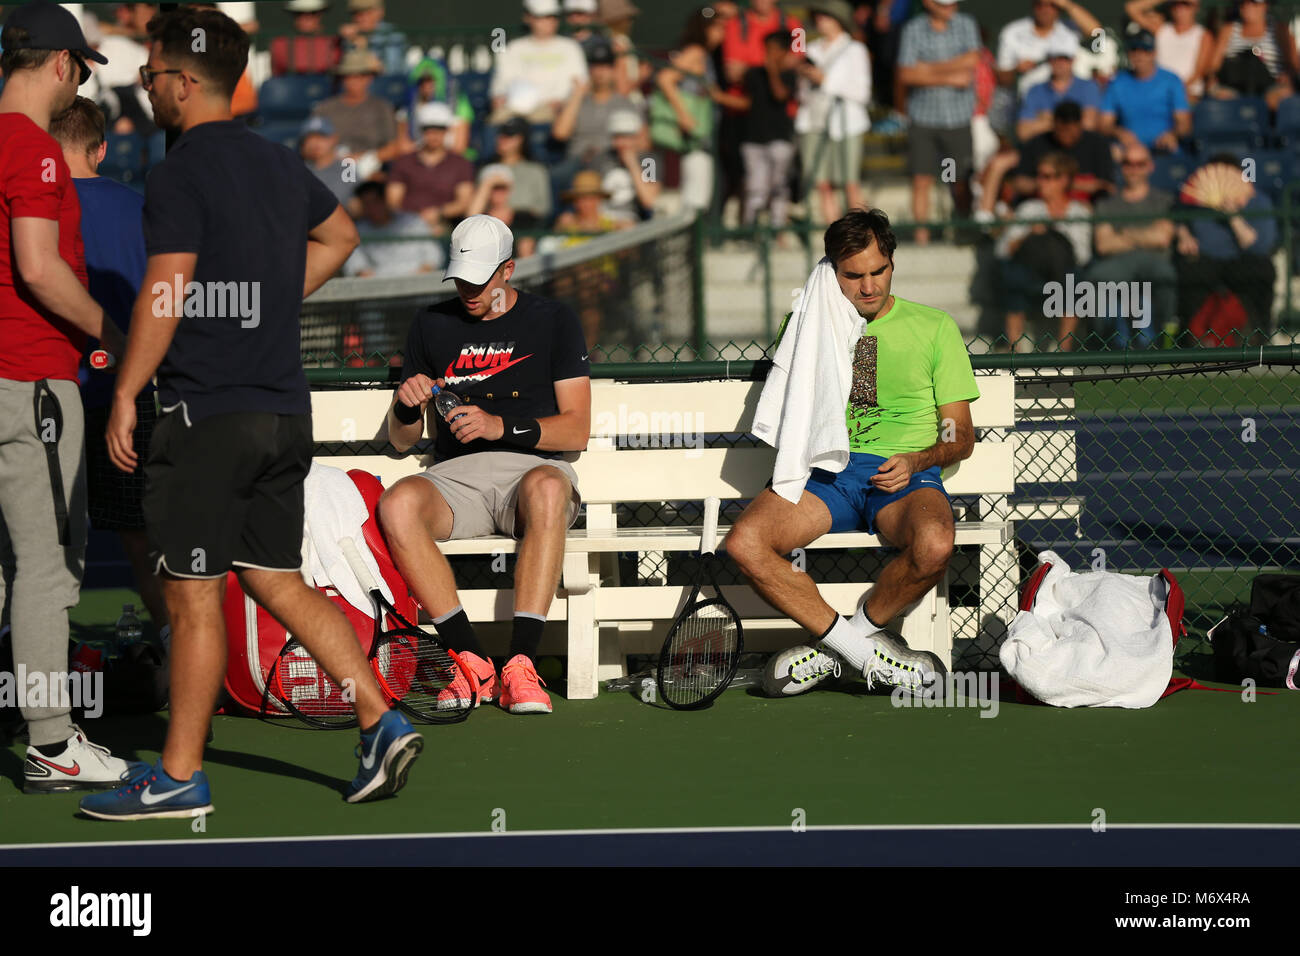 edmund hindu singles German fourth seed alexander zverev wilted in 33-degree heat and crashed out in the third round on saturday zverev, playing for the third day in succession, was shocked by latvian qualifier.